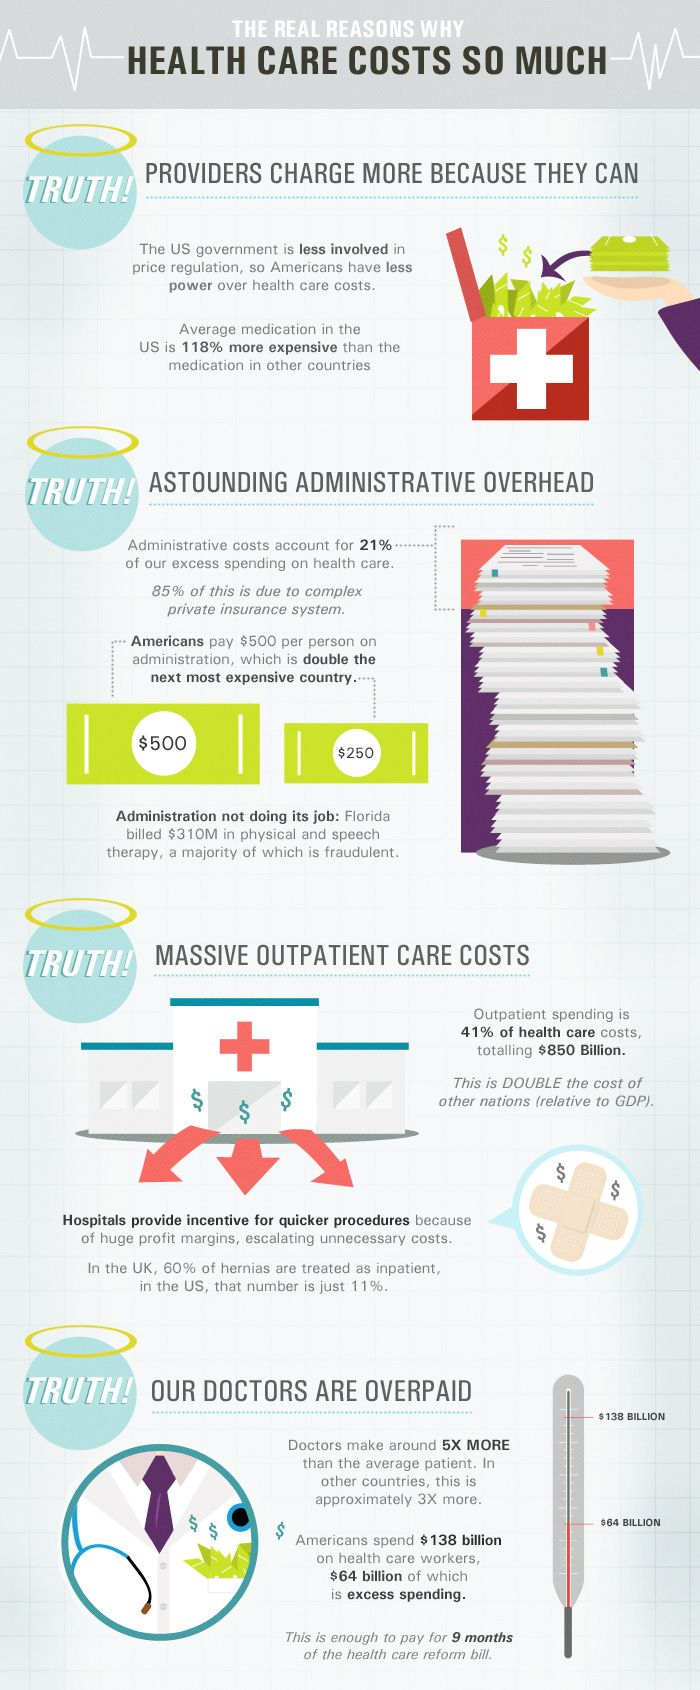 Brilliant information graphics, and informative! Nice myth-busting re health costs in the US.